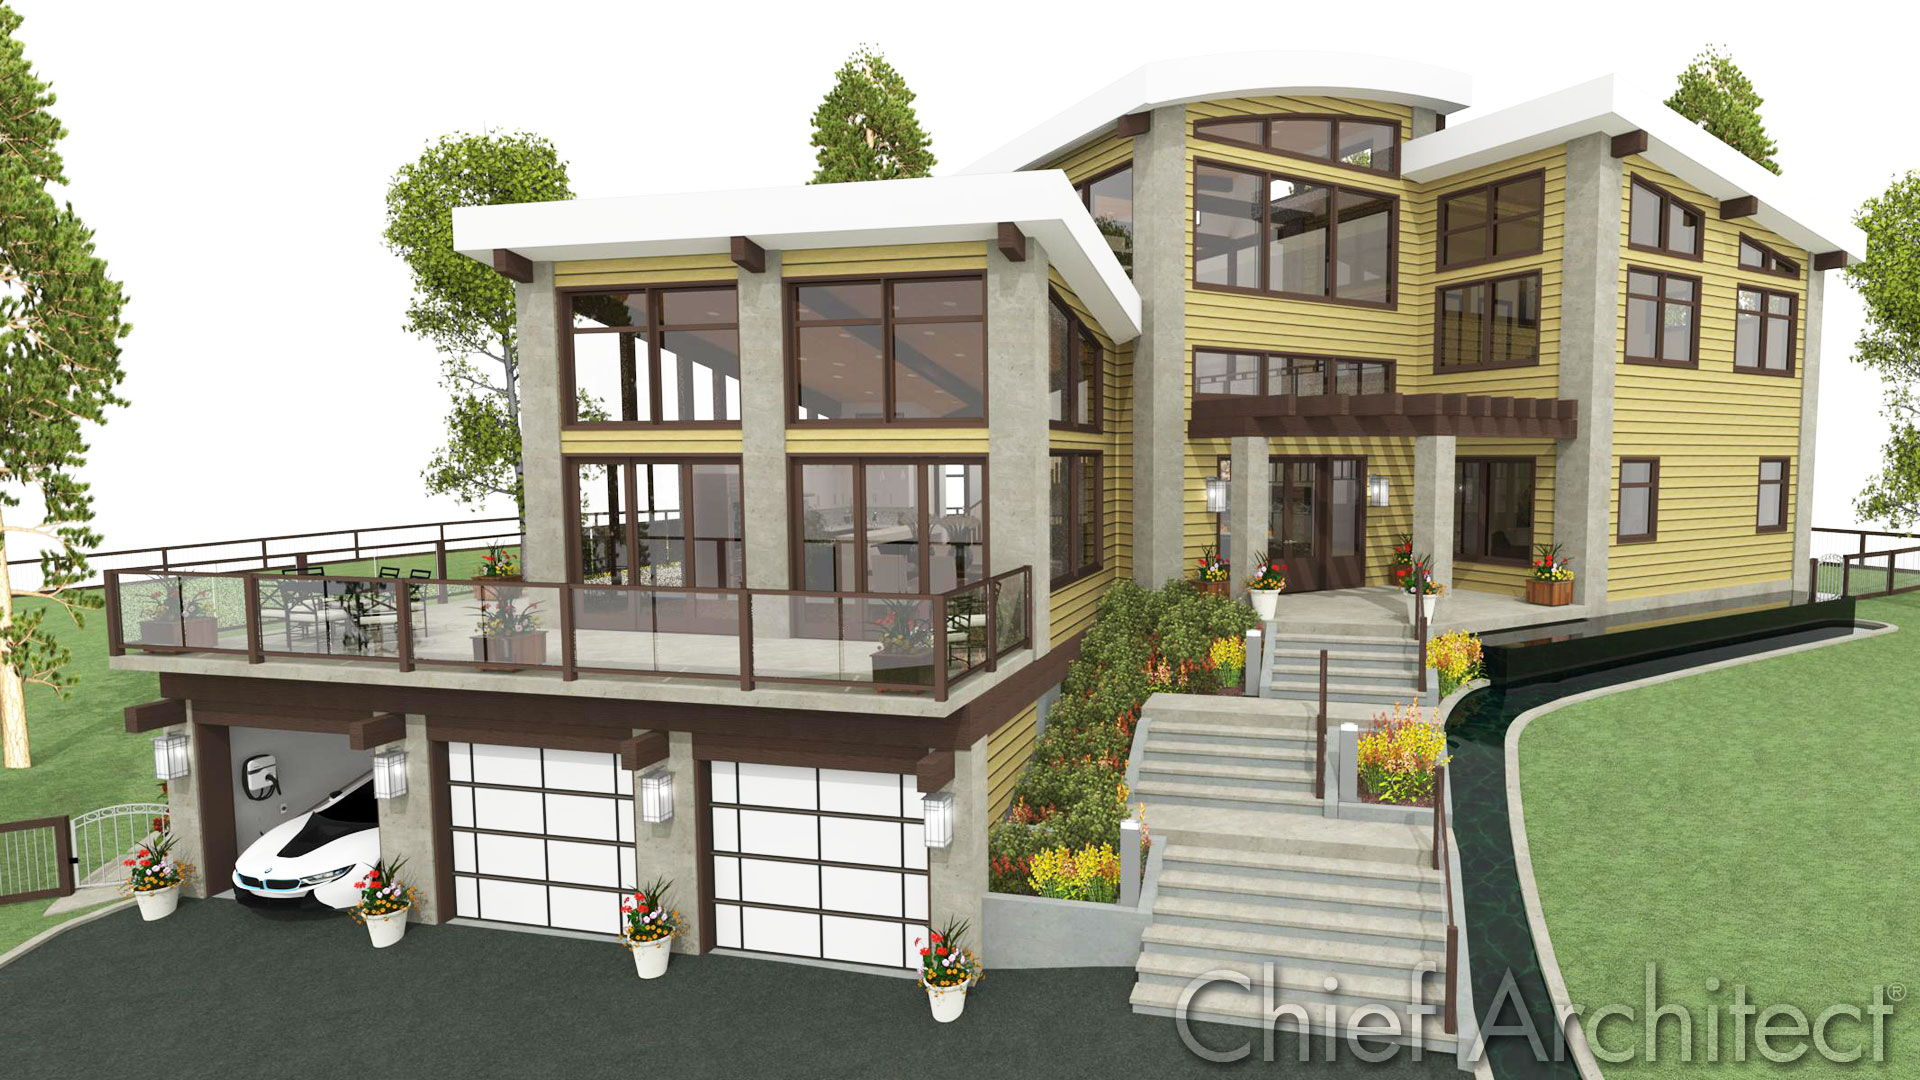 Chief architect home design software samples gallery Building on a lot